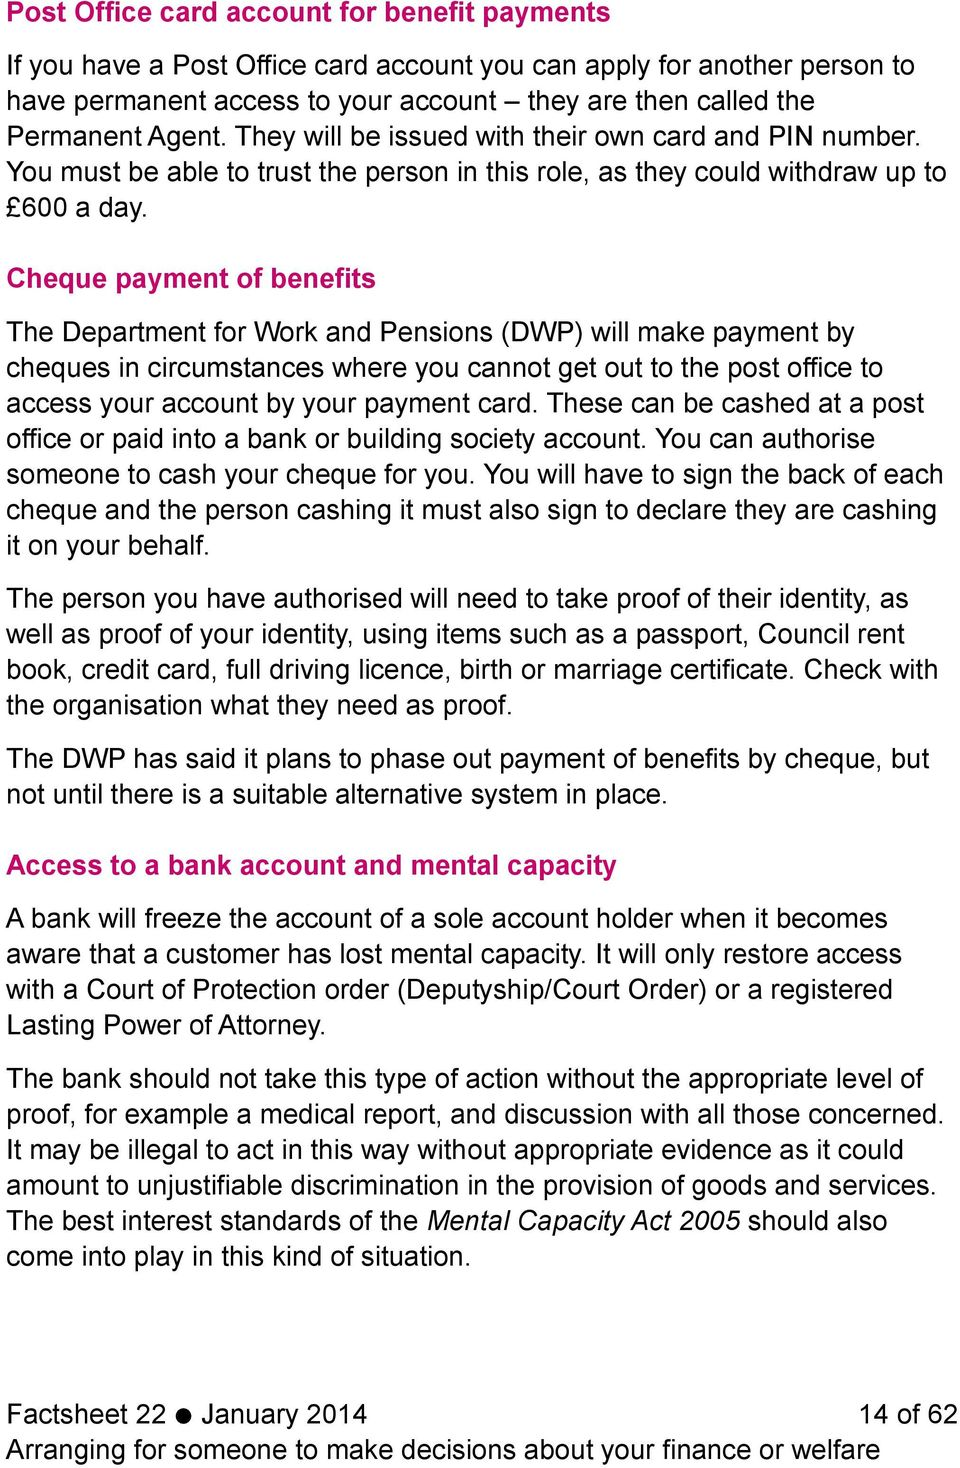 Cheque payment of benefits The Department for Work and Pensions (DWP) will make payment by cheques in circumstances where you cannot get out to the post office to access your account by your payment